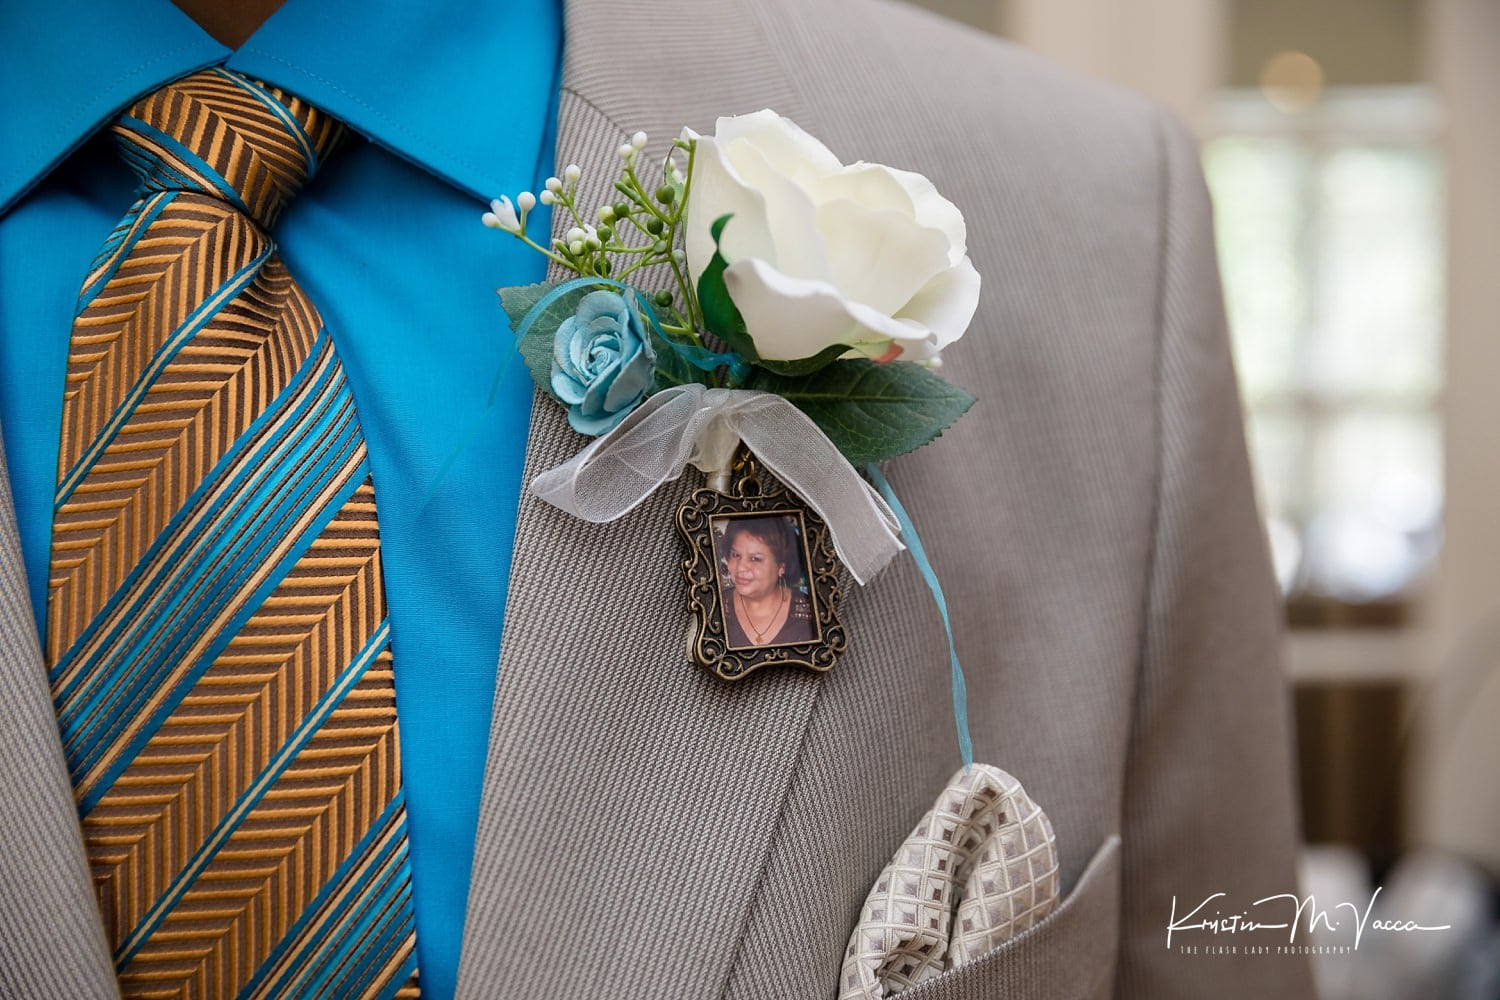 Intimate wedding photos from Louis & Damary's ceremony at The Simsbury 1820 House by Simsbury, CT photographer The Flash Lady Photography